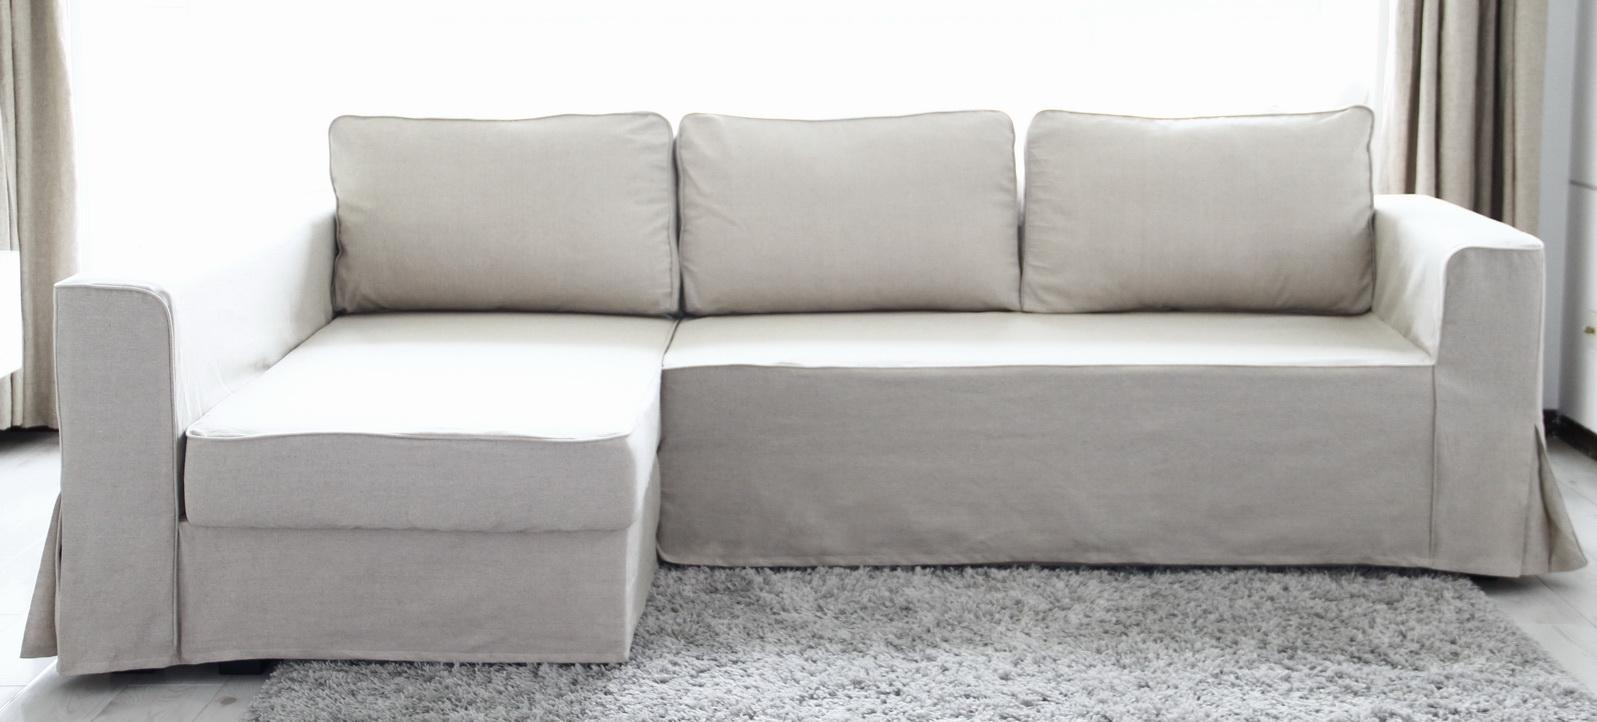 Furniture: Ikea Sleeper Sofa | Sleeper Sectional Sofa Ikea Throughout Sleeper Sectional Sofa Ikea (View 12 of 20)